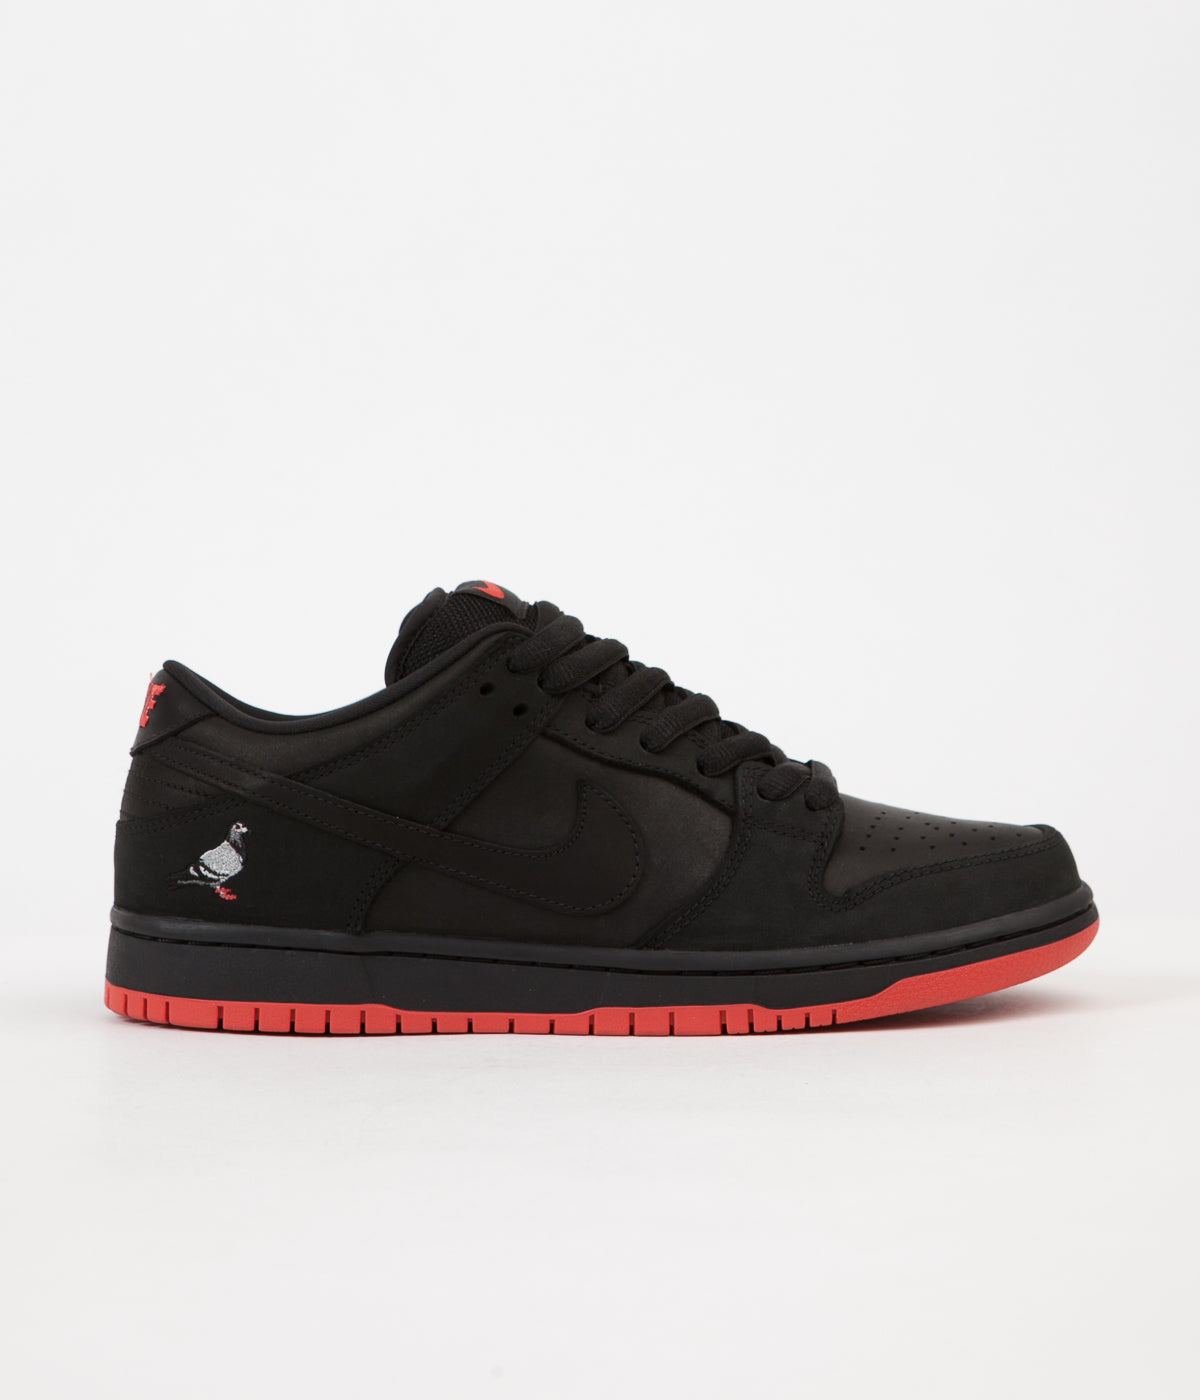 21215f689d2a Nike SB Dunk Low  Black Pigeon  Shoes - Black   Black - Sienna ...